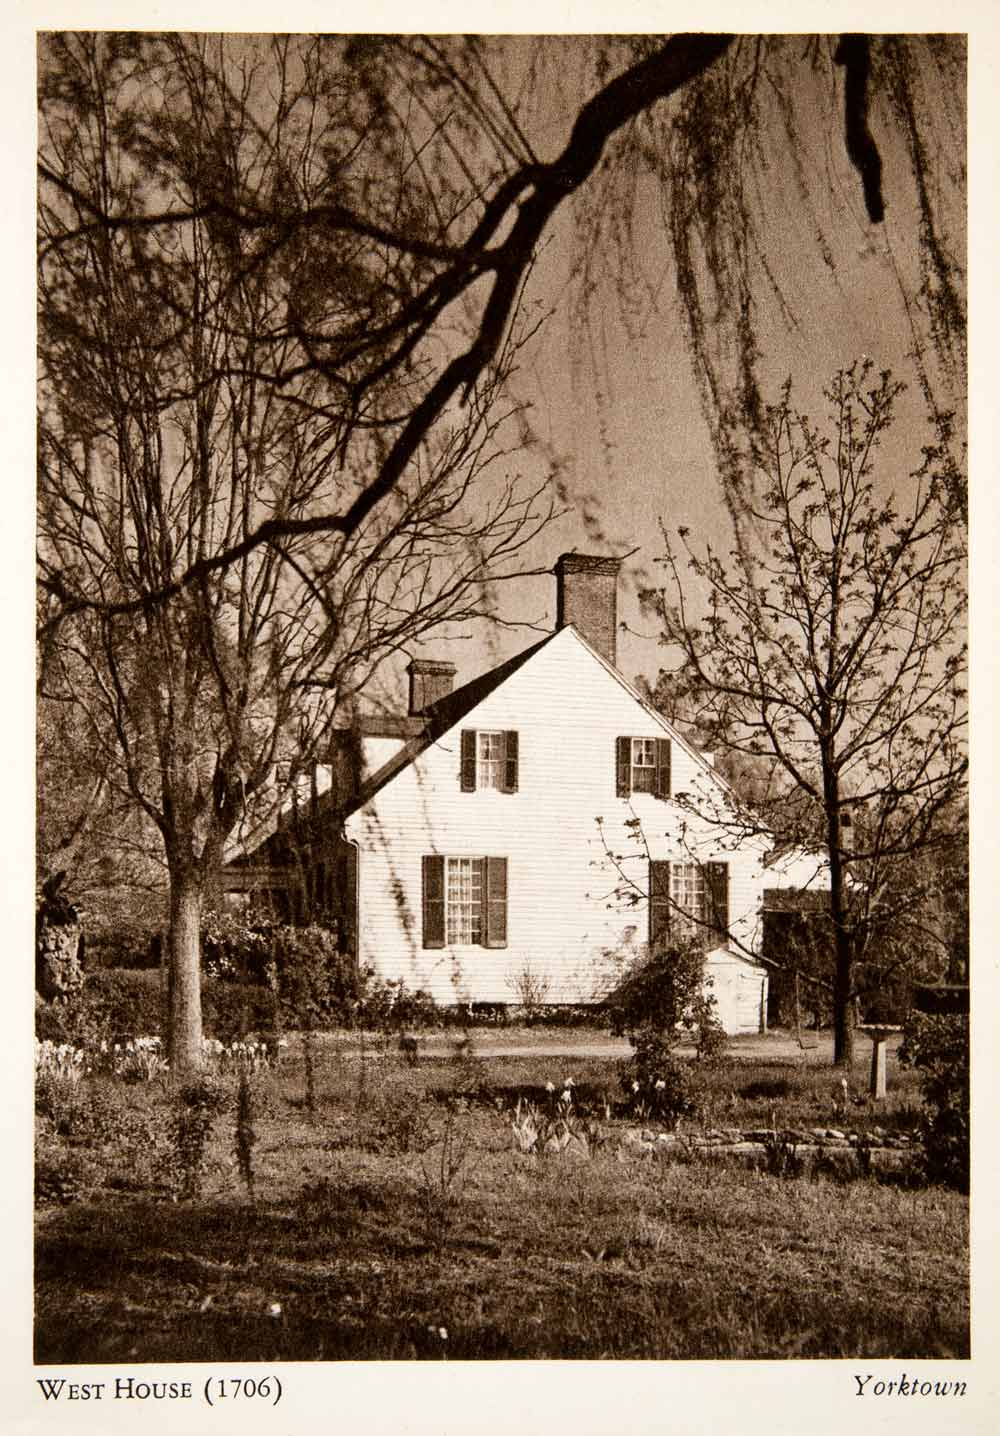 1947 Photogravure West House Yorktown Virginia Colonial Architecture XGXB2